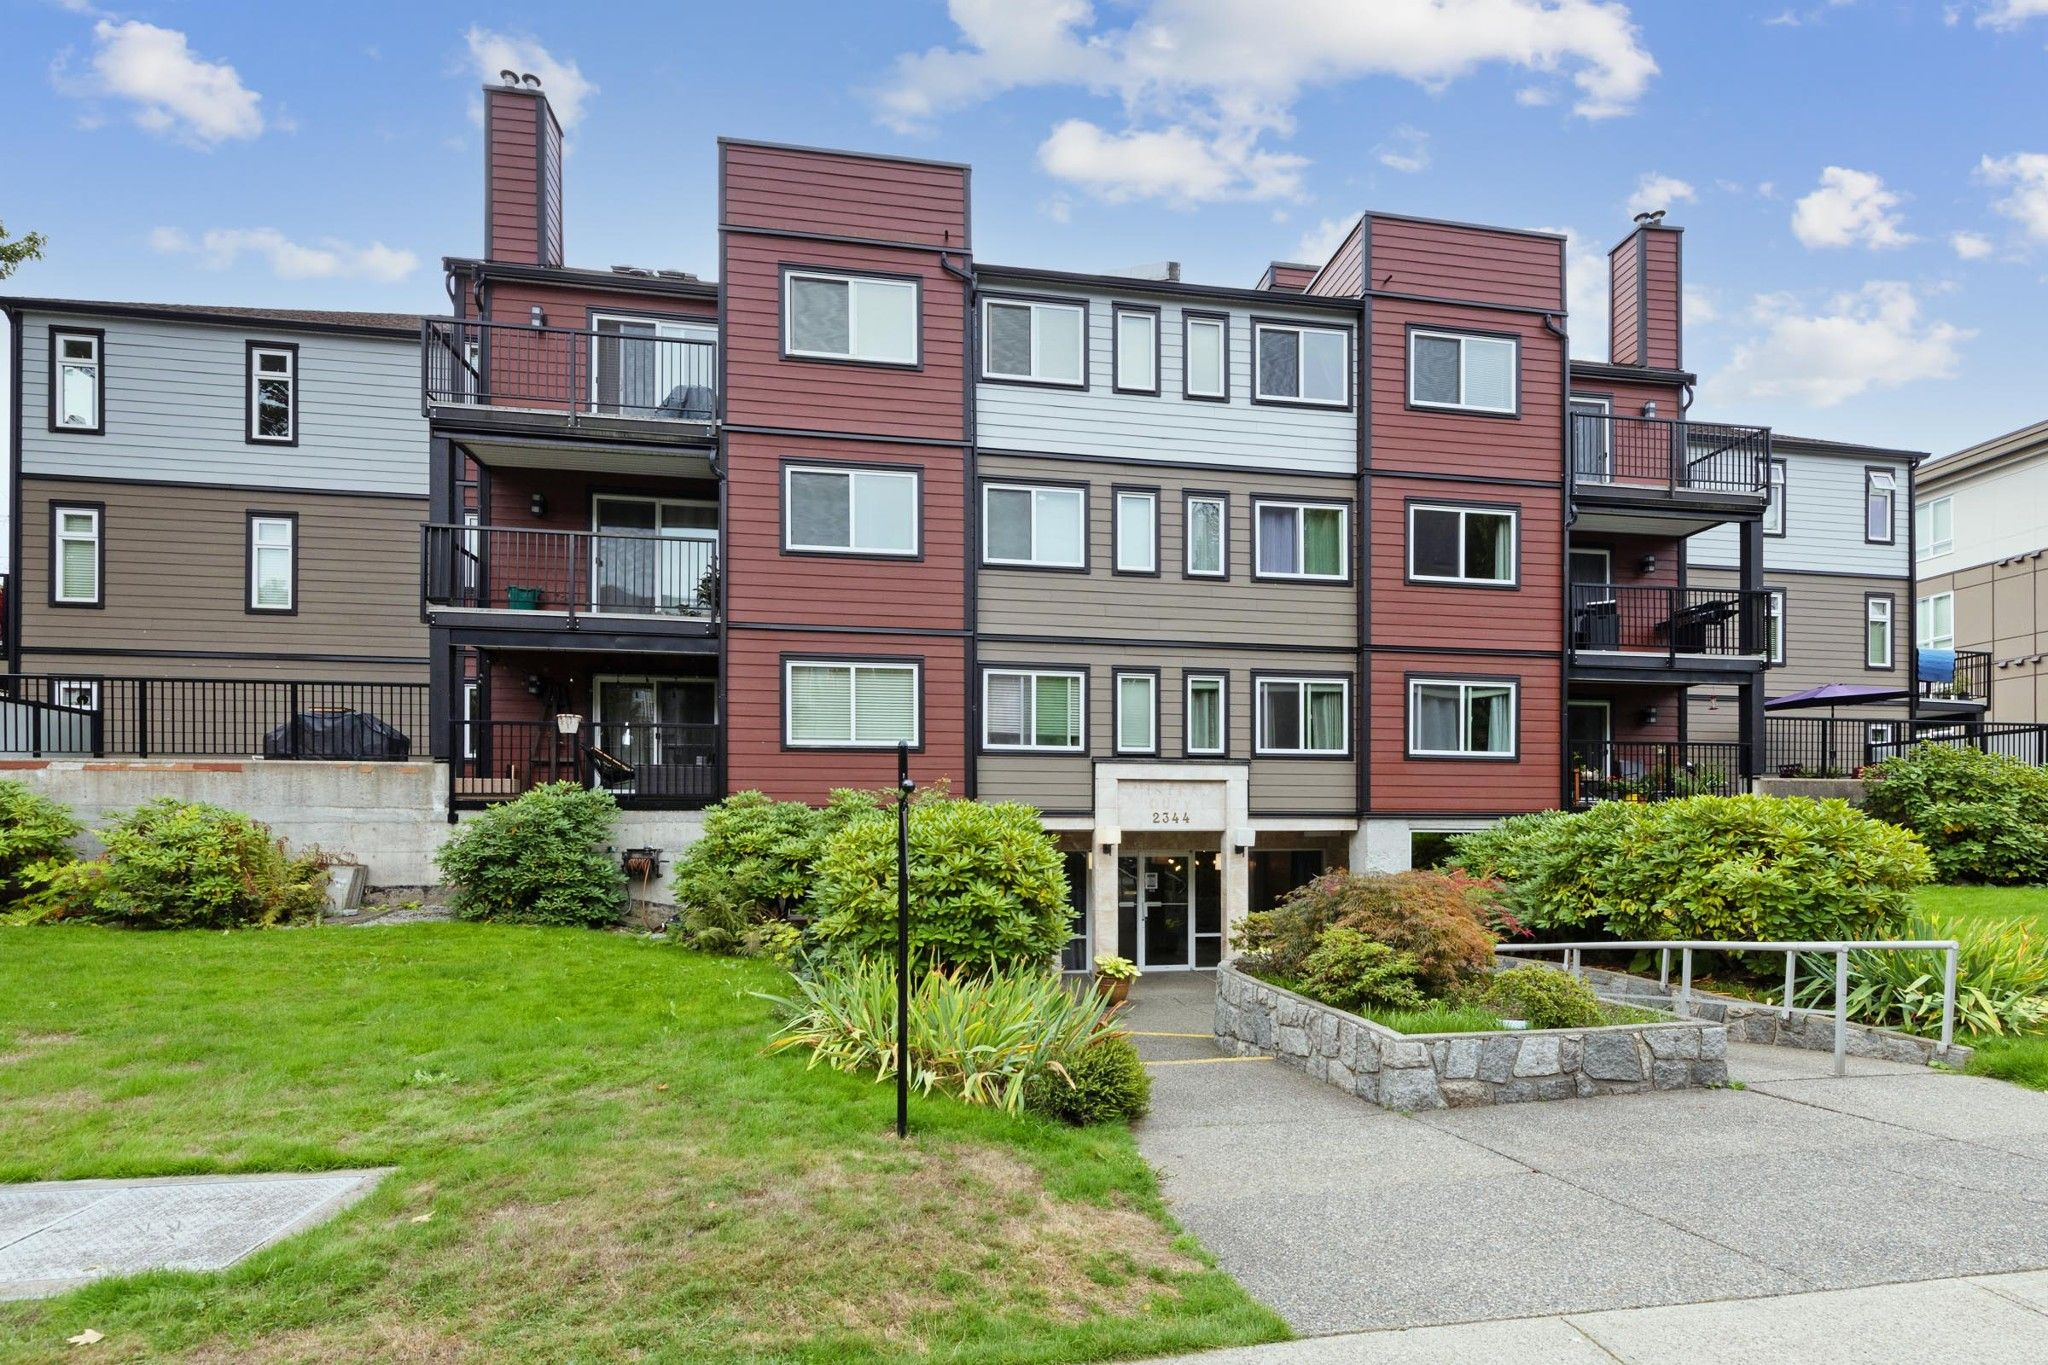 """Main Photo: 102 2344 ATKINS Avenue in Port Coquitlam: Central Pt Coquitlam Condo for sale in """"RIVER'S EDGE"""" : MLS®# R2616683"""